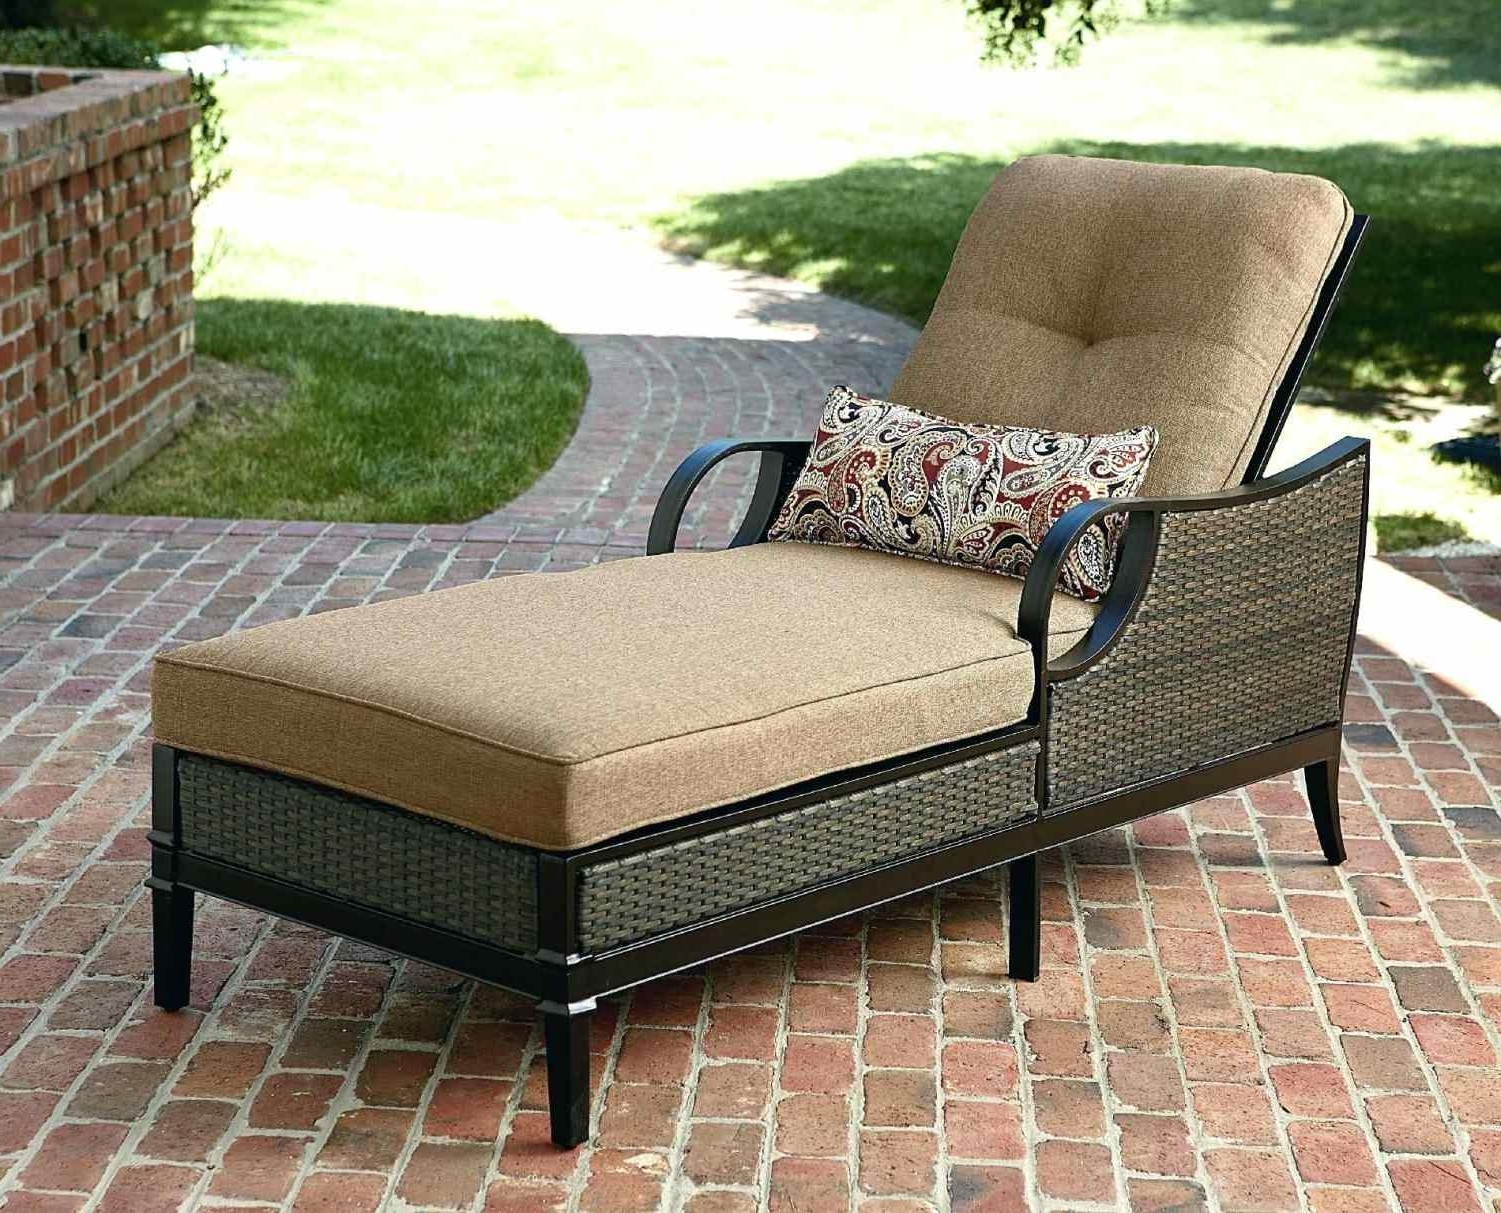 Chaise Outdoor Lounge Chairs Within Most Up To Date Lounge Chair : Cushion Sets Wicker Furniture Chaise Lowes S Wicker (View 7 of 15)